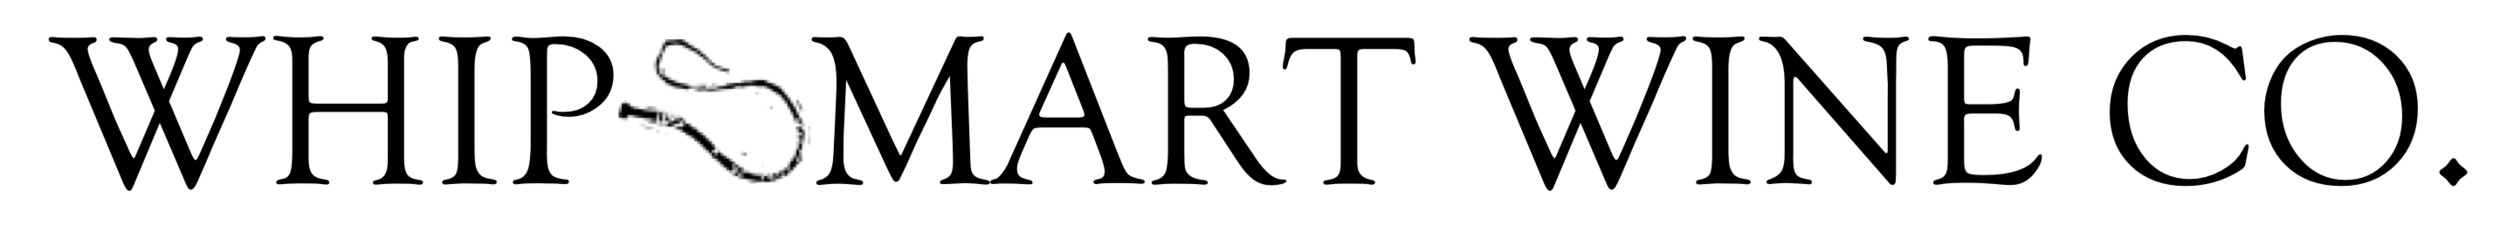 WhipSmartWinesLogo.png